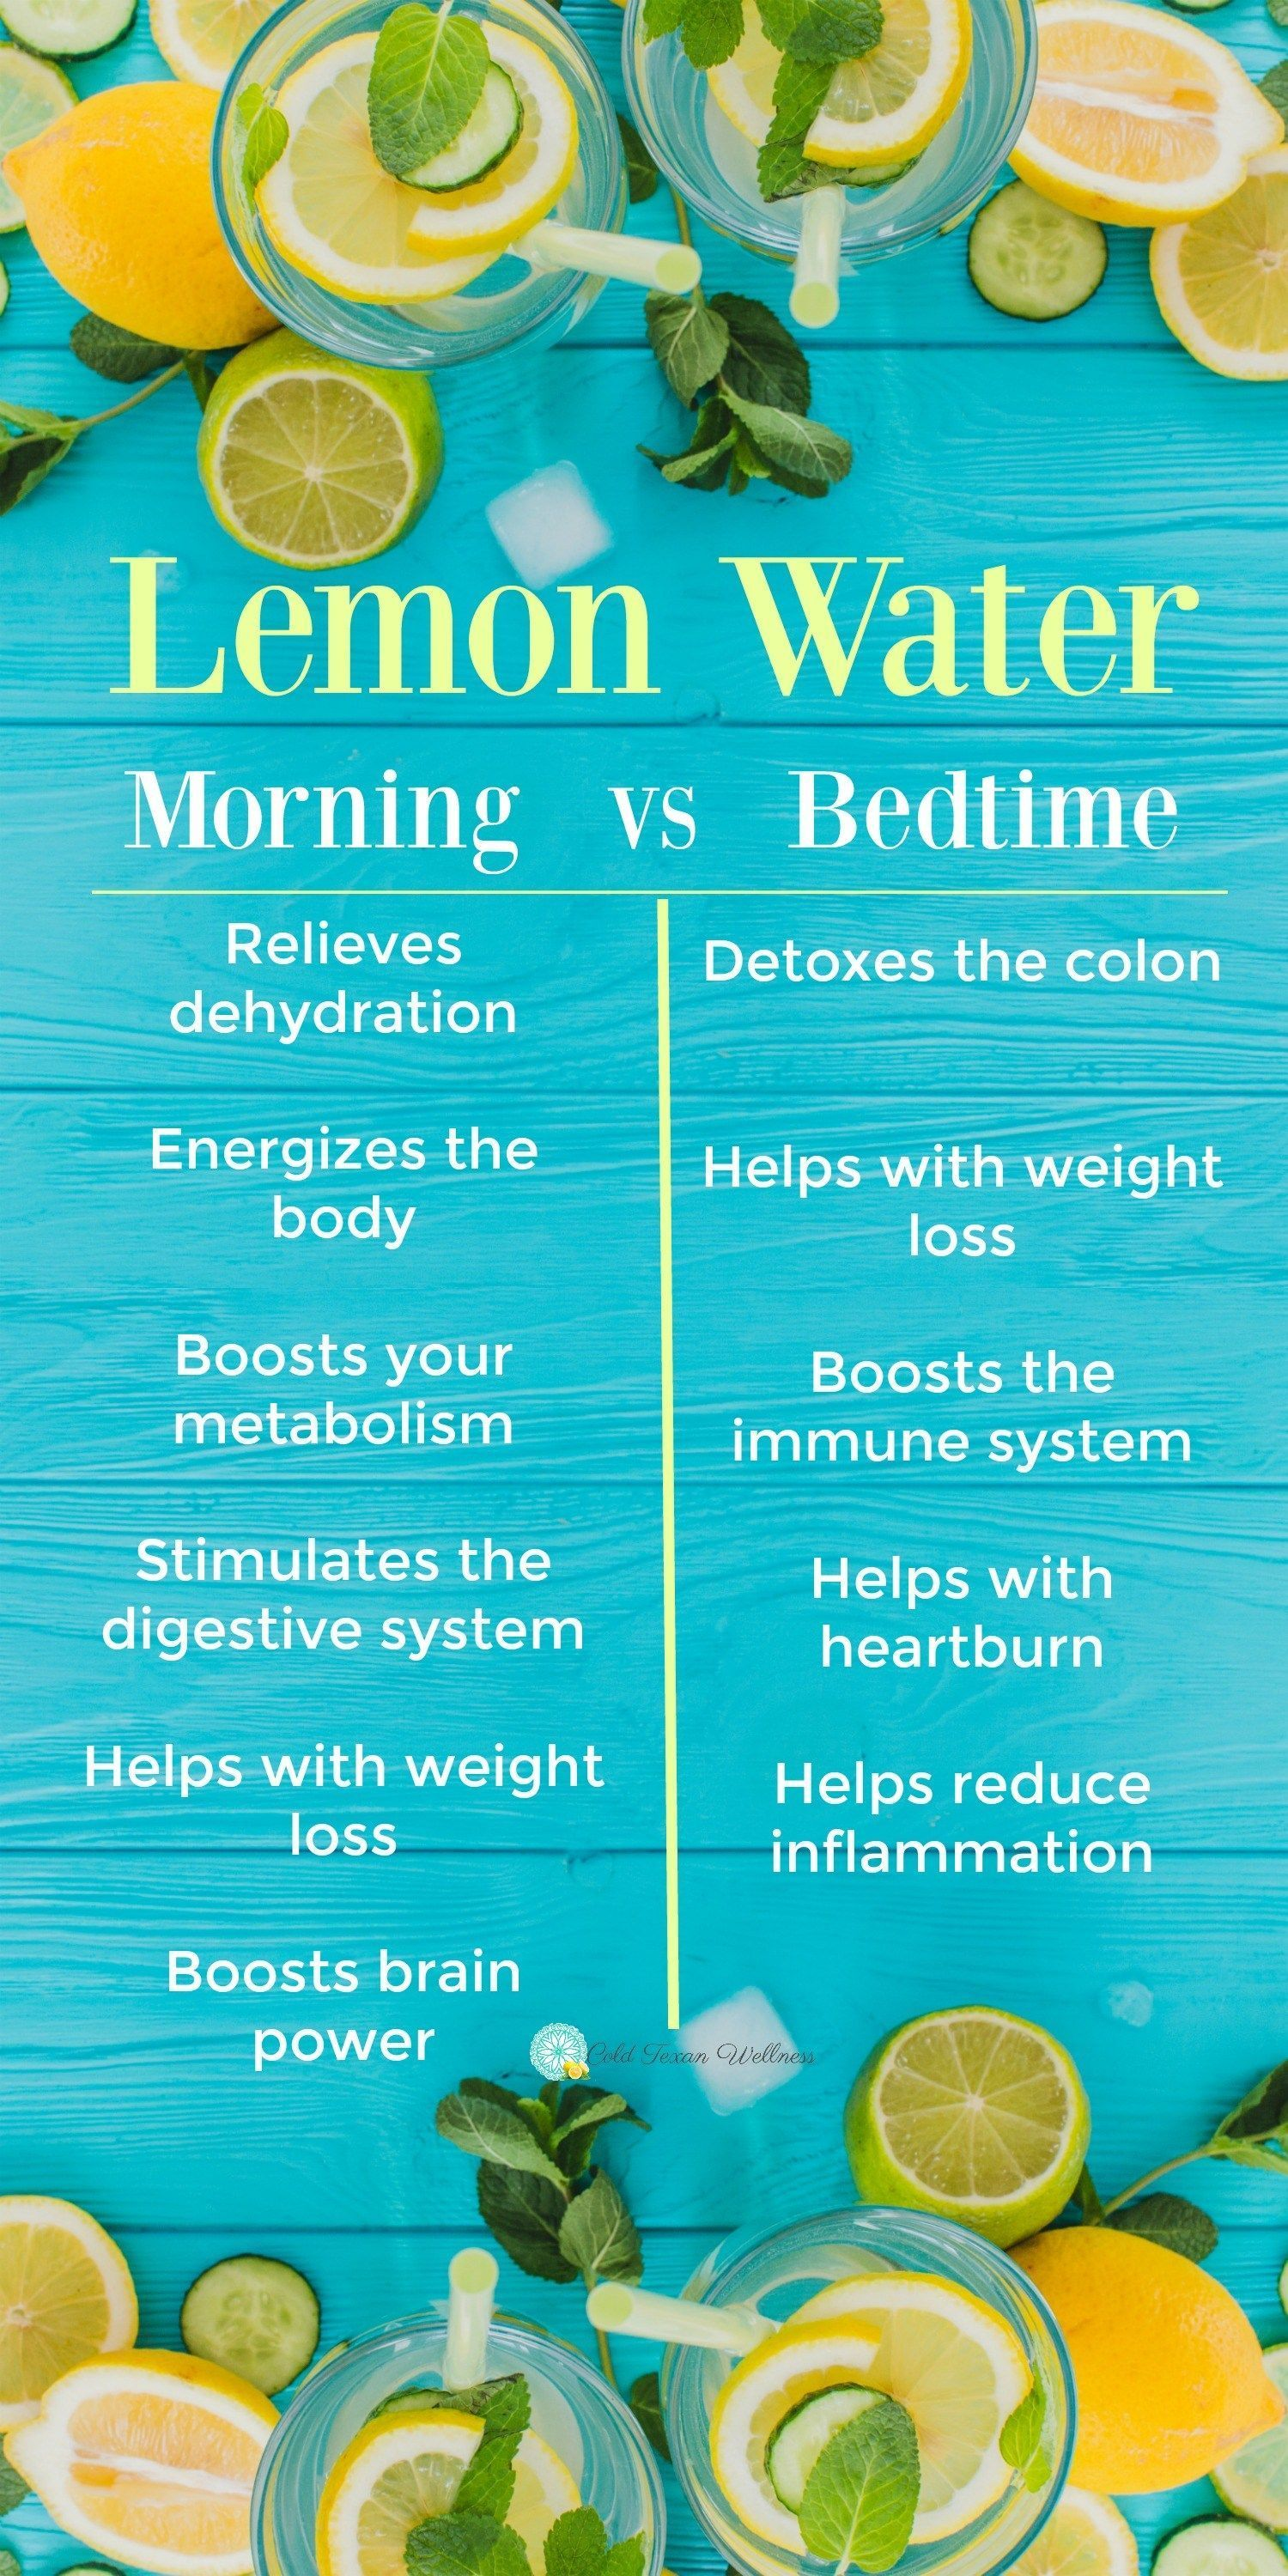 Best benefits of drinking lemon water in the morning